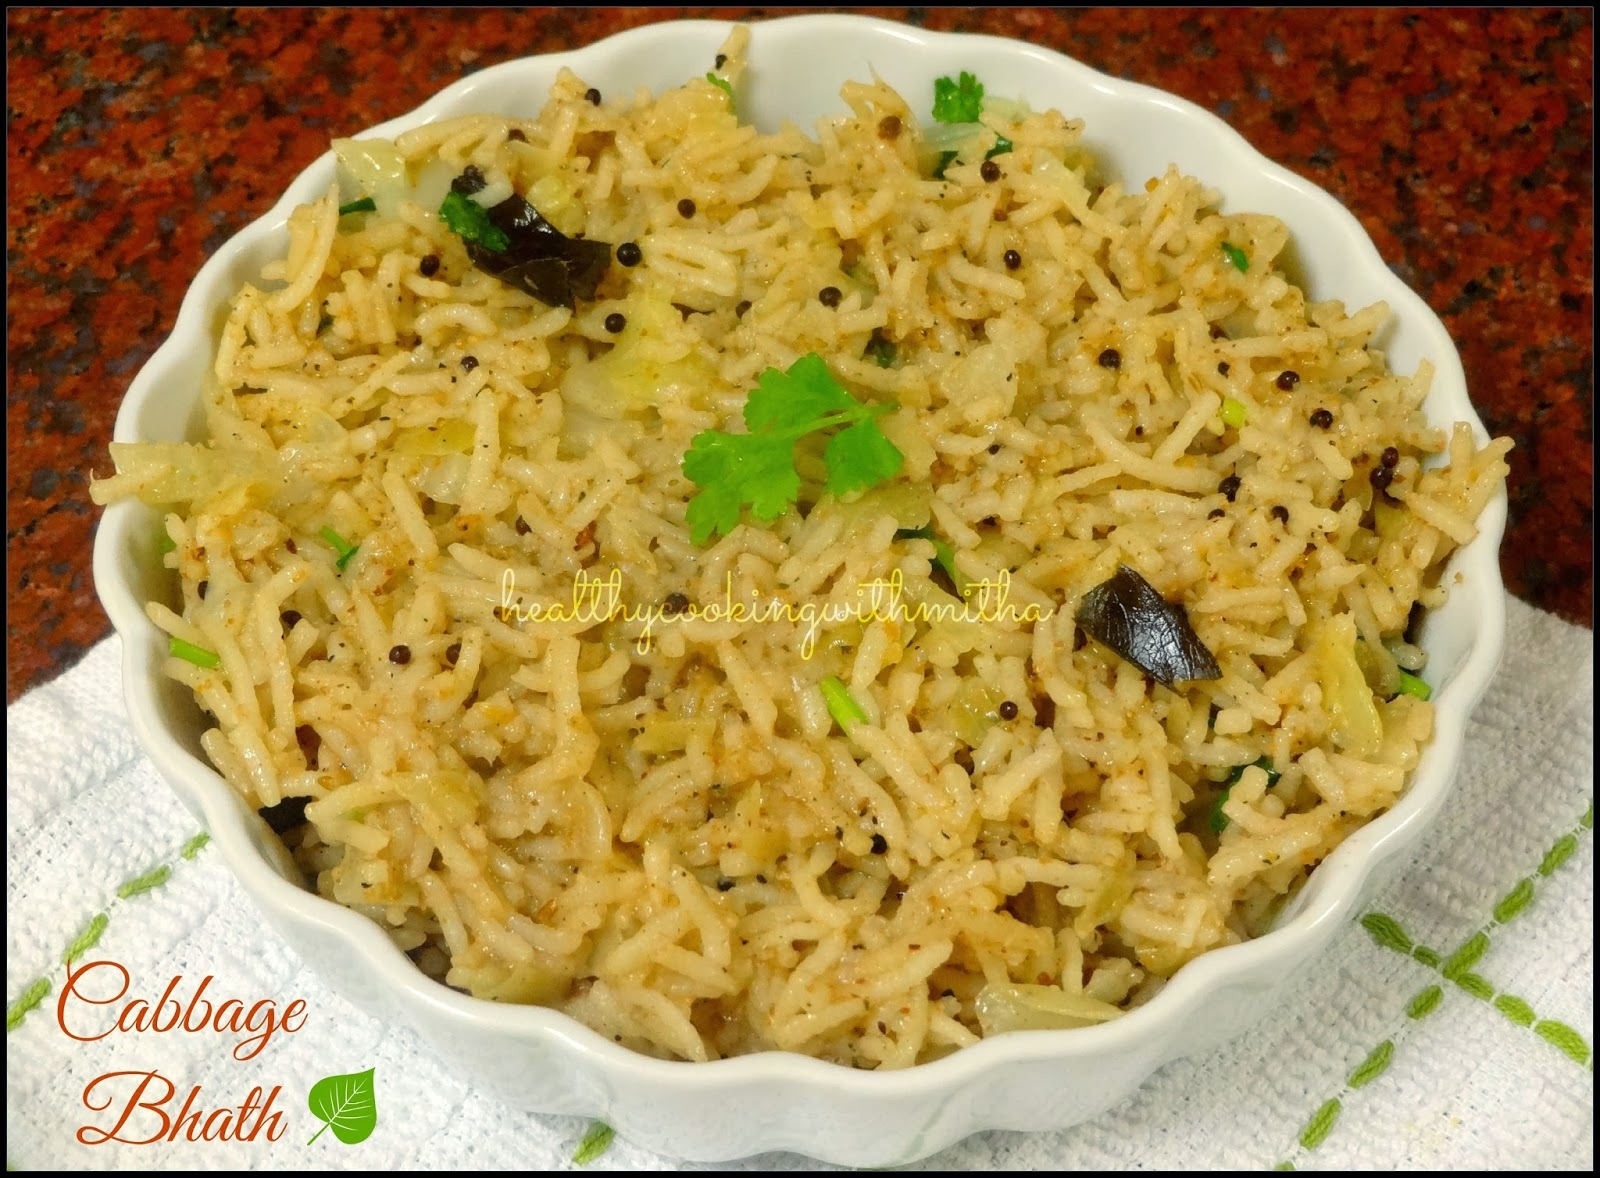 Cabbage Bhath | Flavored Rice from Karnataka